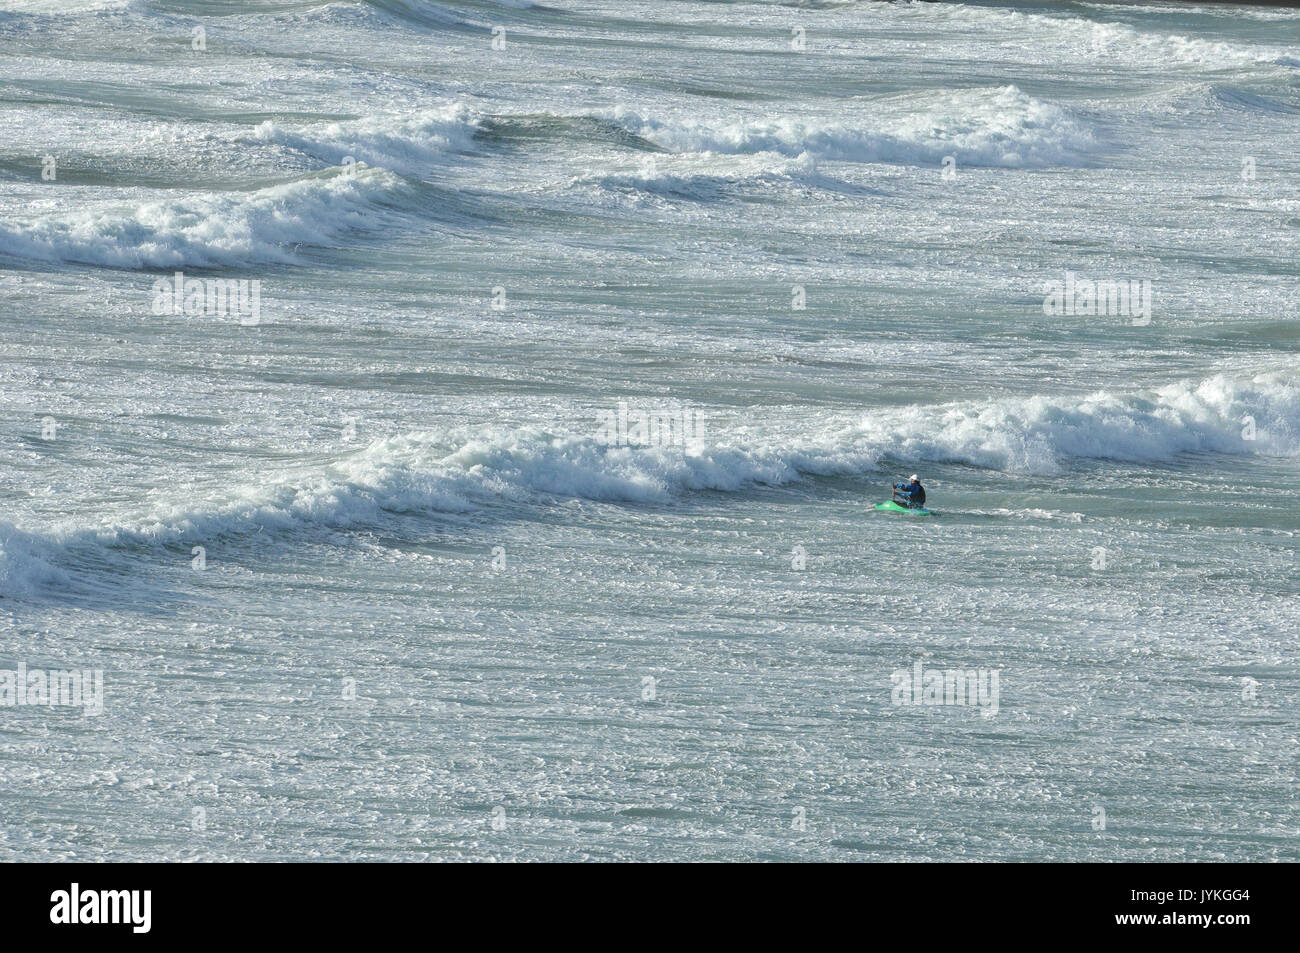 a kayaker paddling against a huge swell rough sea at polzeath in cornwall big waves and breakers canoeists paddlers surf kayaking in the surfing waves - Stock Image